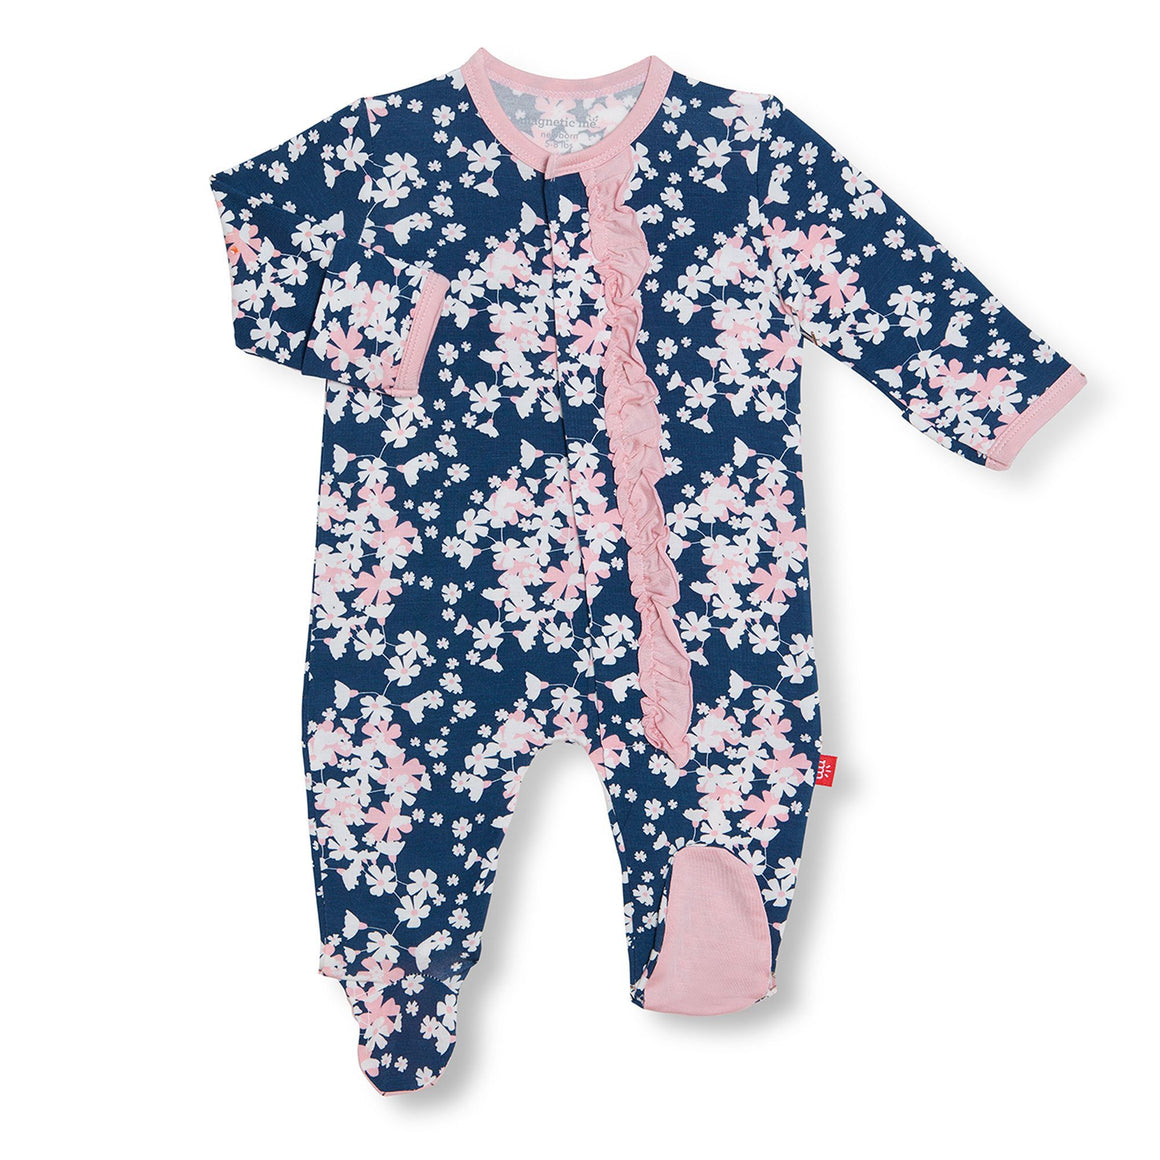 Magnificent Baby Apparel 9-12 Mo / Aberdeen Magnetic Me Aberdeen Modal Footie